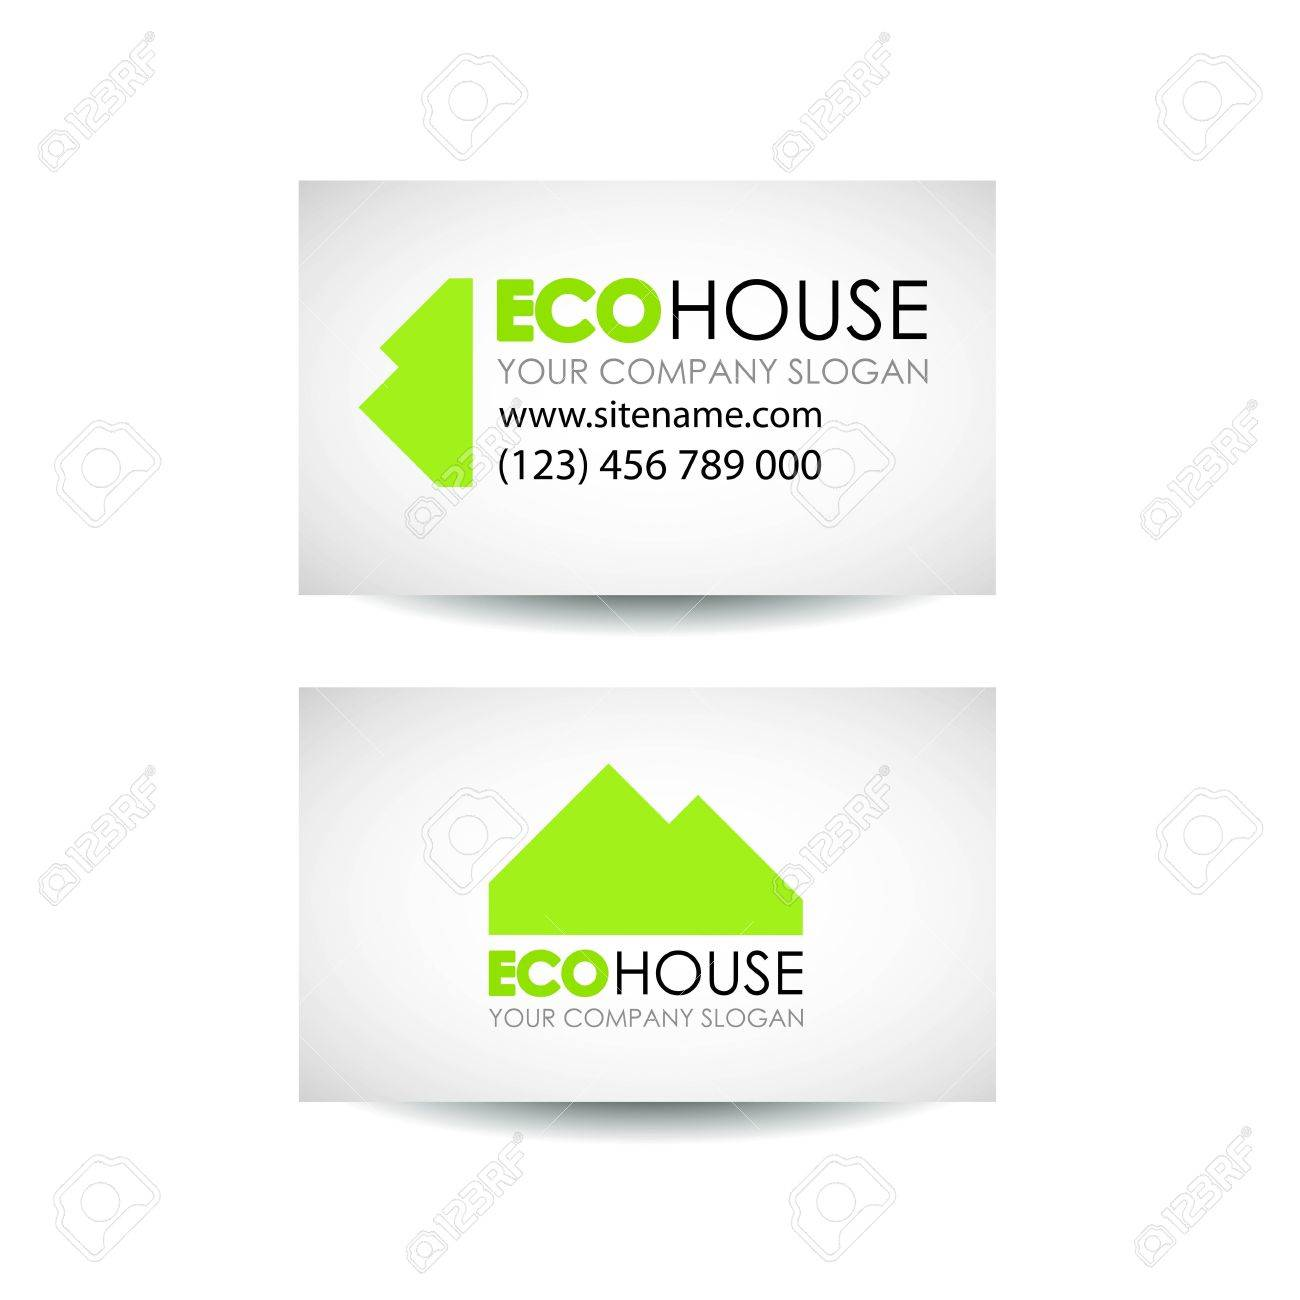 Awesome Real Estate Slogans For Business Cards Pictures